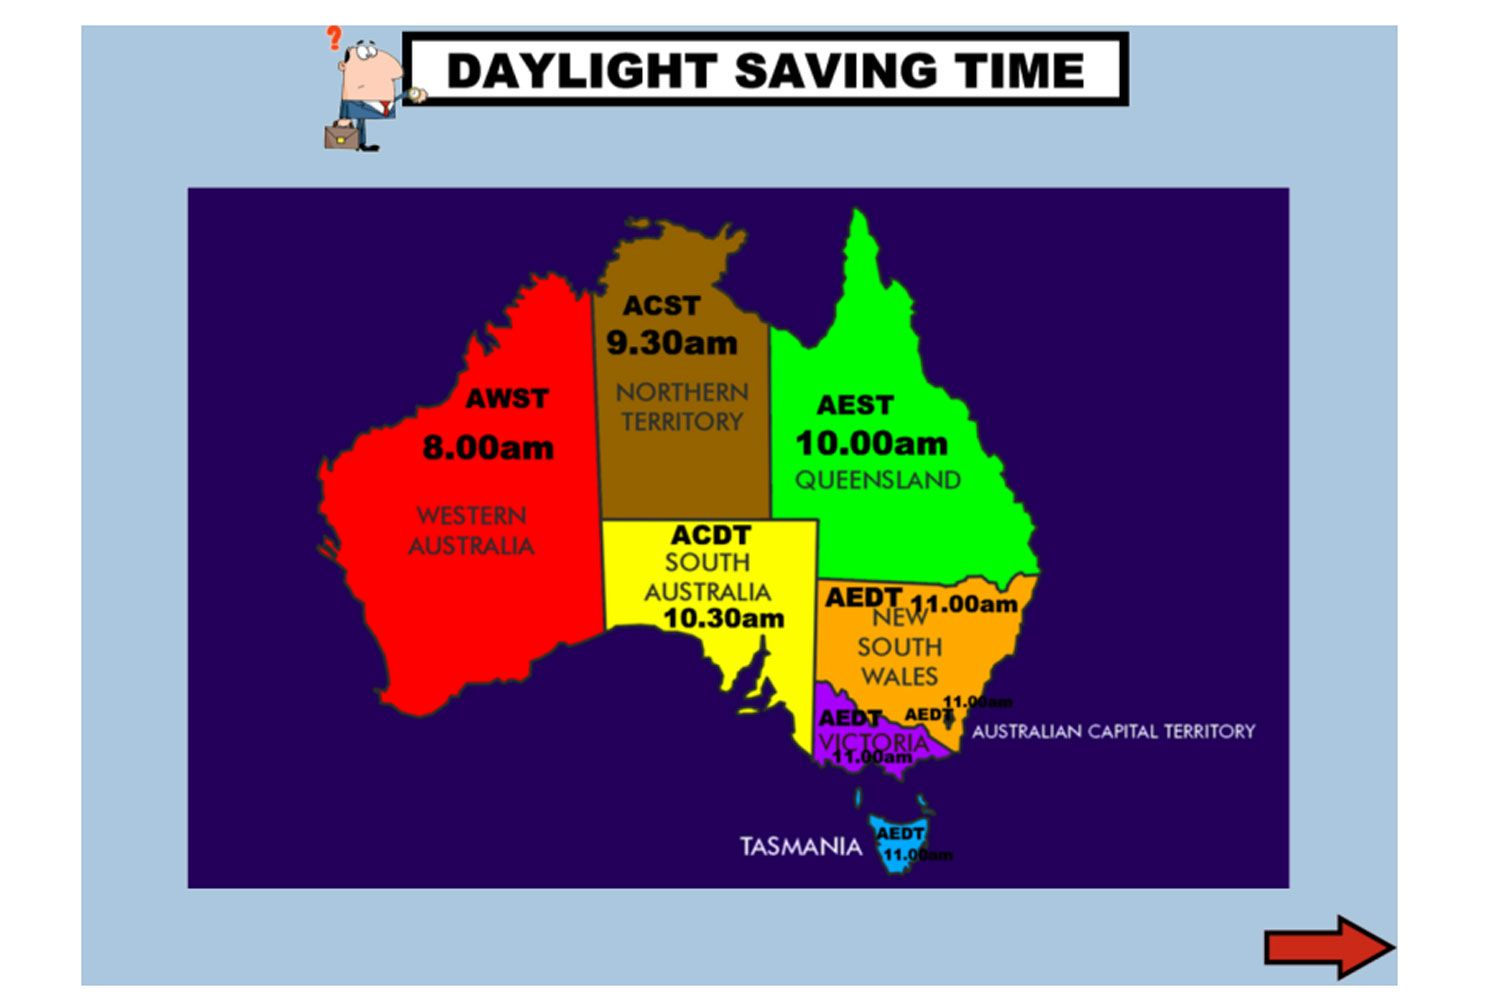 Learn All About Australian Time Zones And Daylight Saving Time With This Terrific Iwb Lesson Http Daylight Savings Time Australian Capital Territory Lesson [ 1000 x 1500 Pixel ]